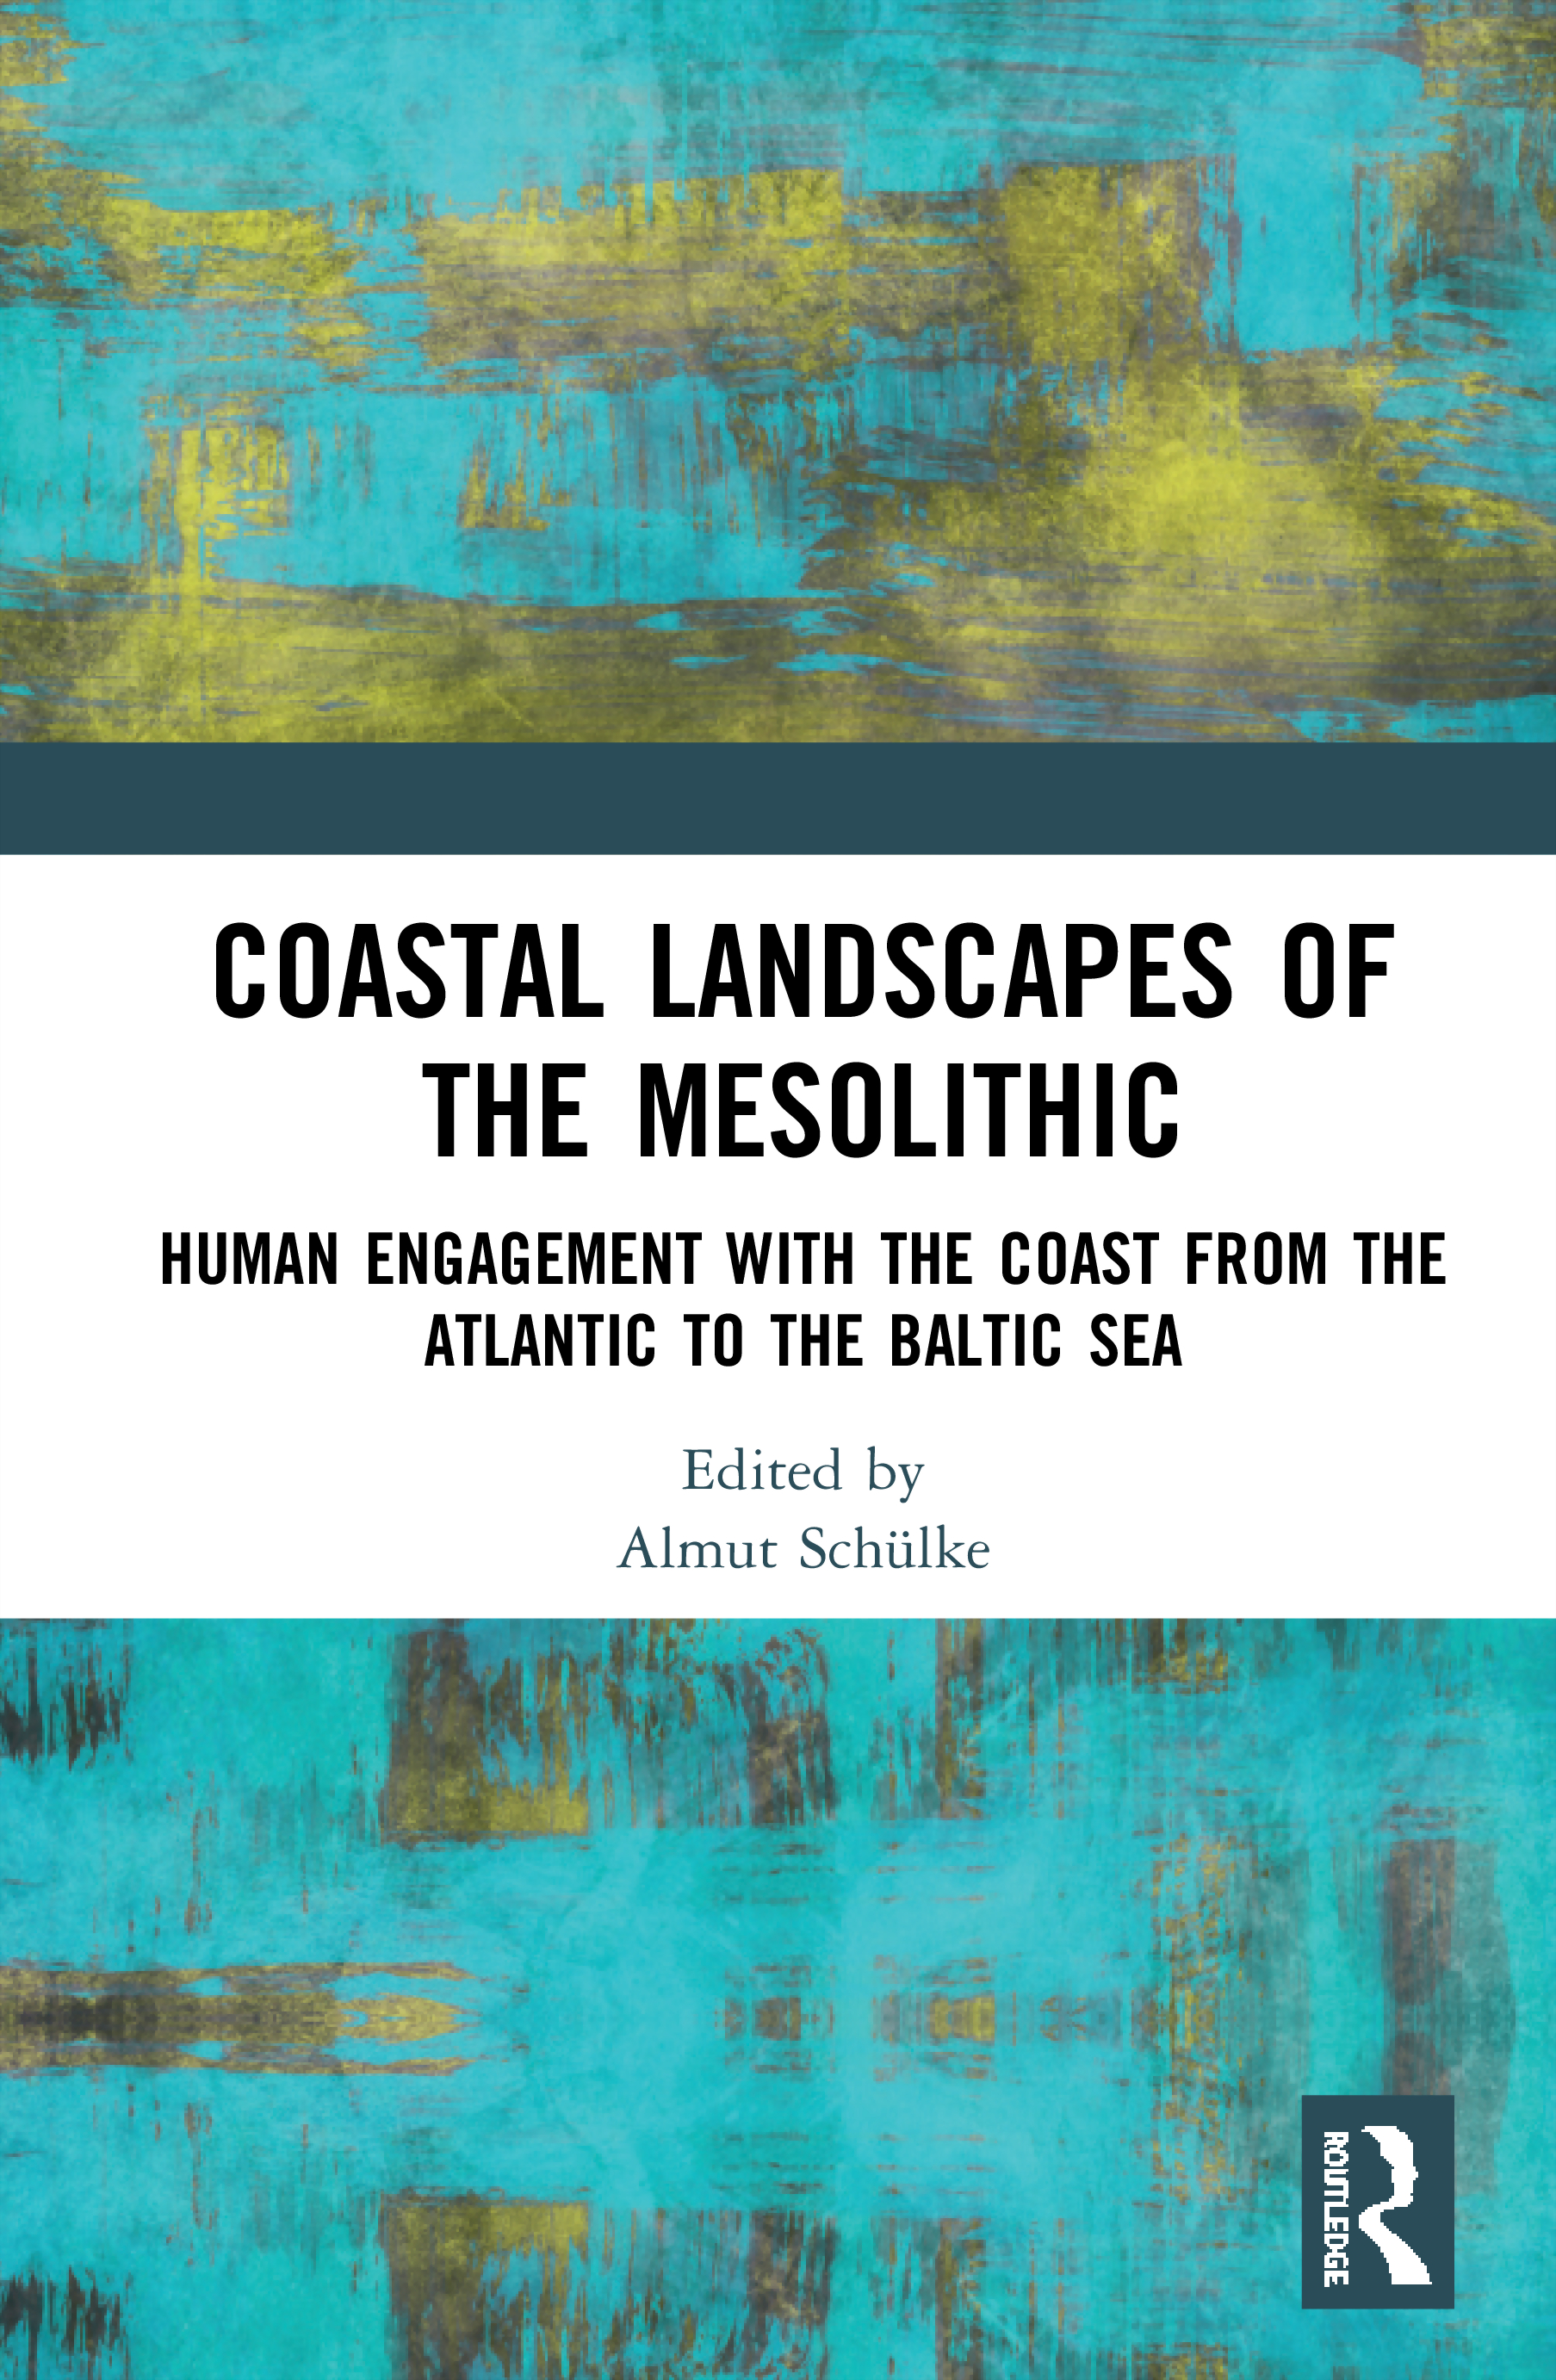 Coastal Landscapes of the Mesolithic: Human Engagement with the Coast from the Atlantic to the Baltic Sea book cover